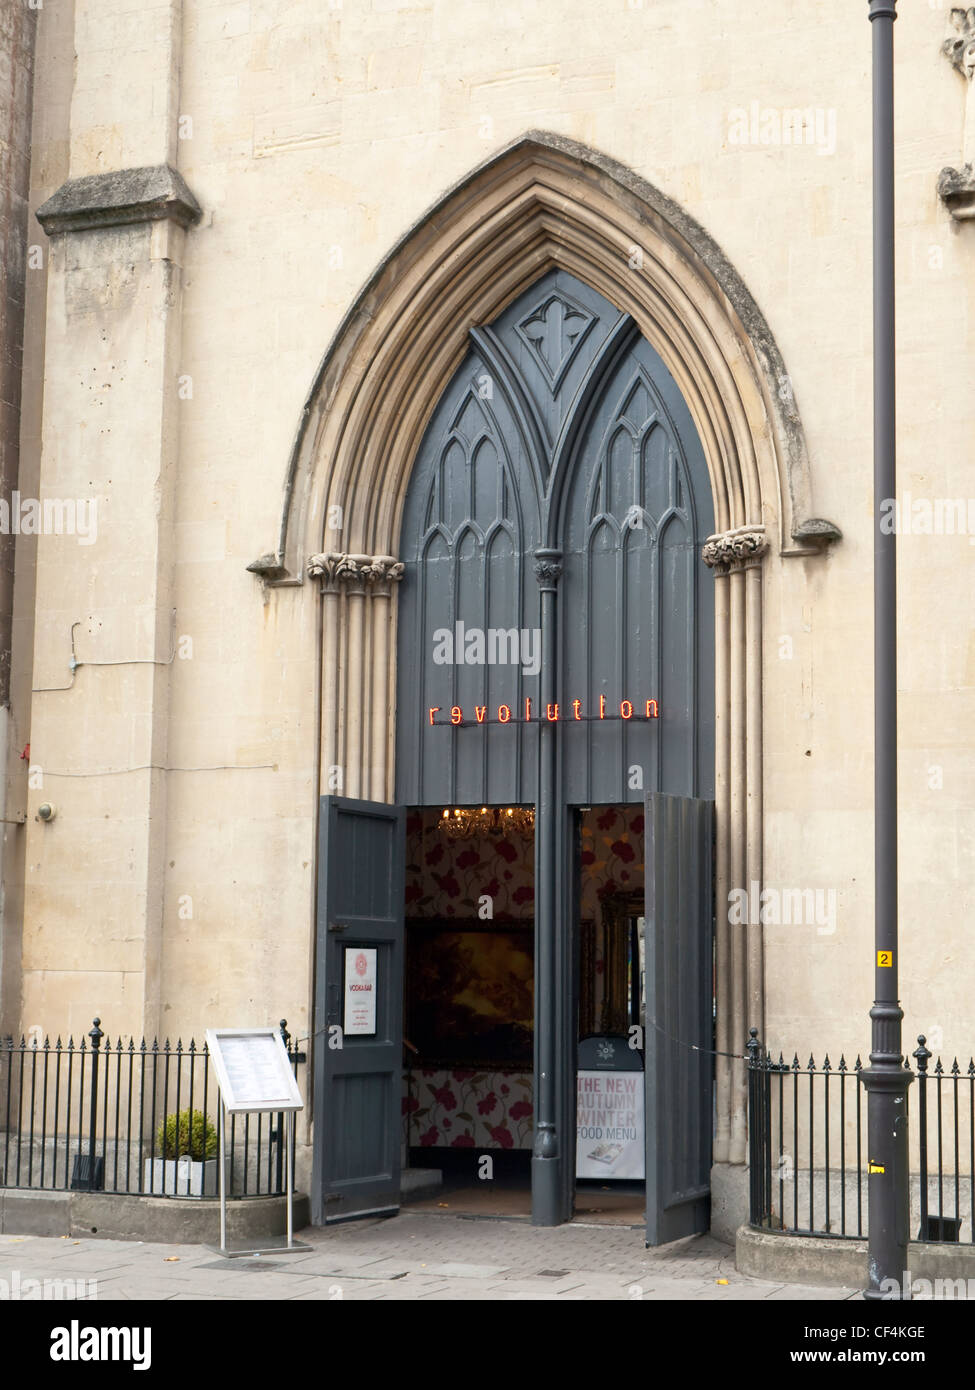 Gothic Pointed Arch Entrance To The Revolution Bar In Clarence Parade Cheltenham Formerly Salem Baptist Church